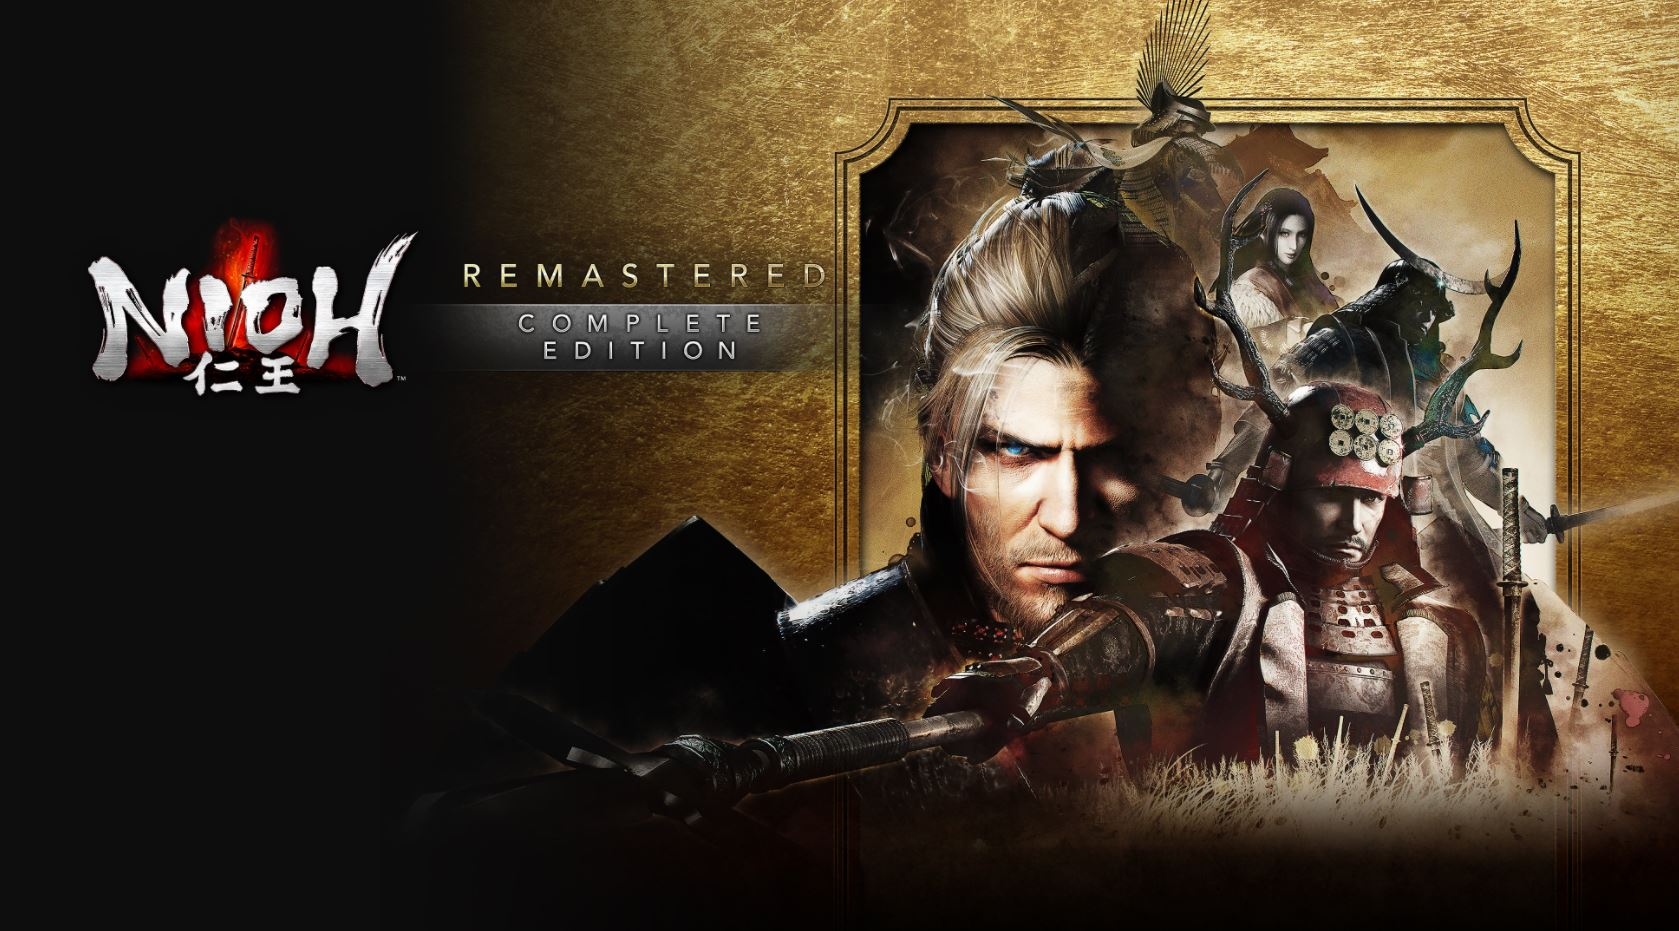 nioh-remastered-the-complete-edition-ps5-news-reviews-videos